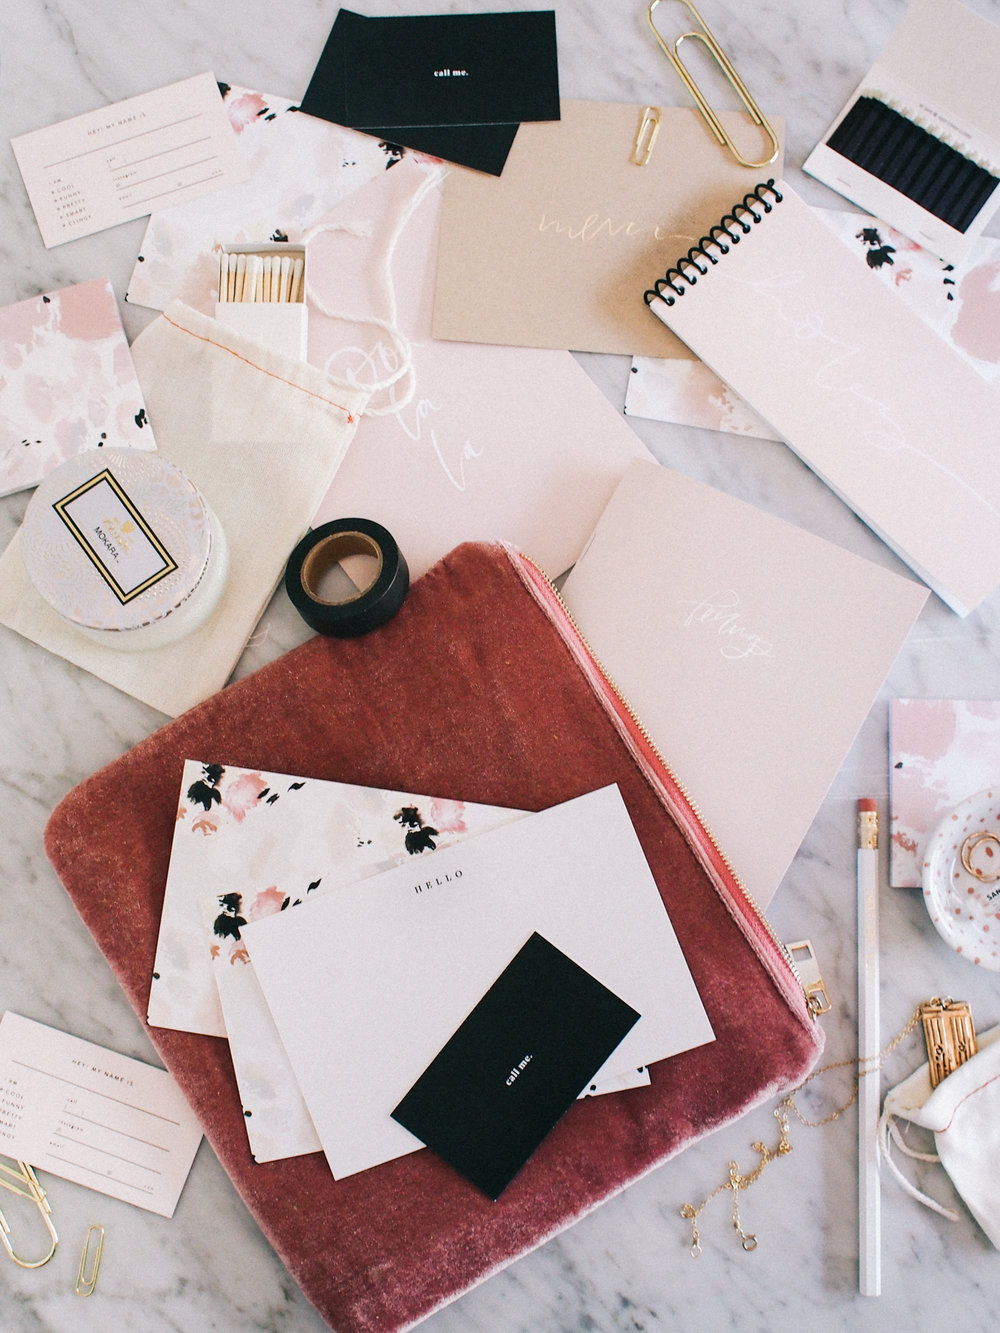 Our stationery essentials for travel | Wilde House Paper